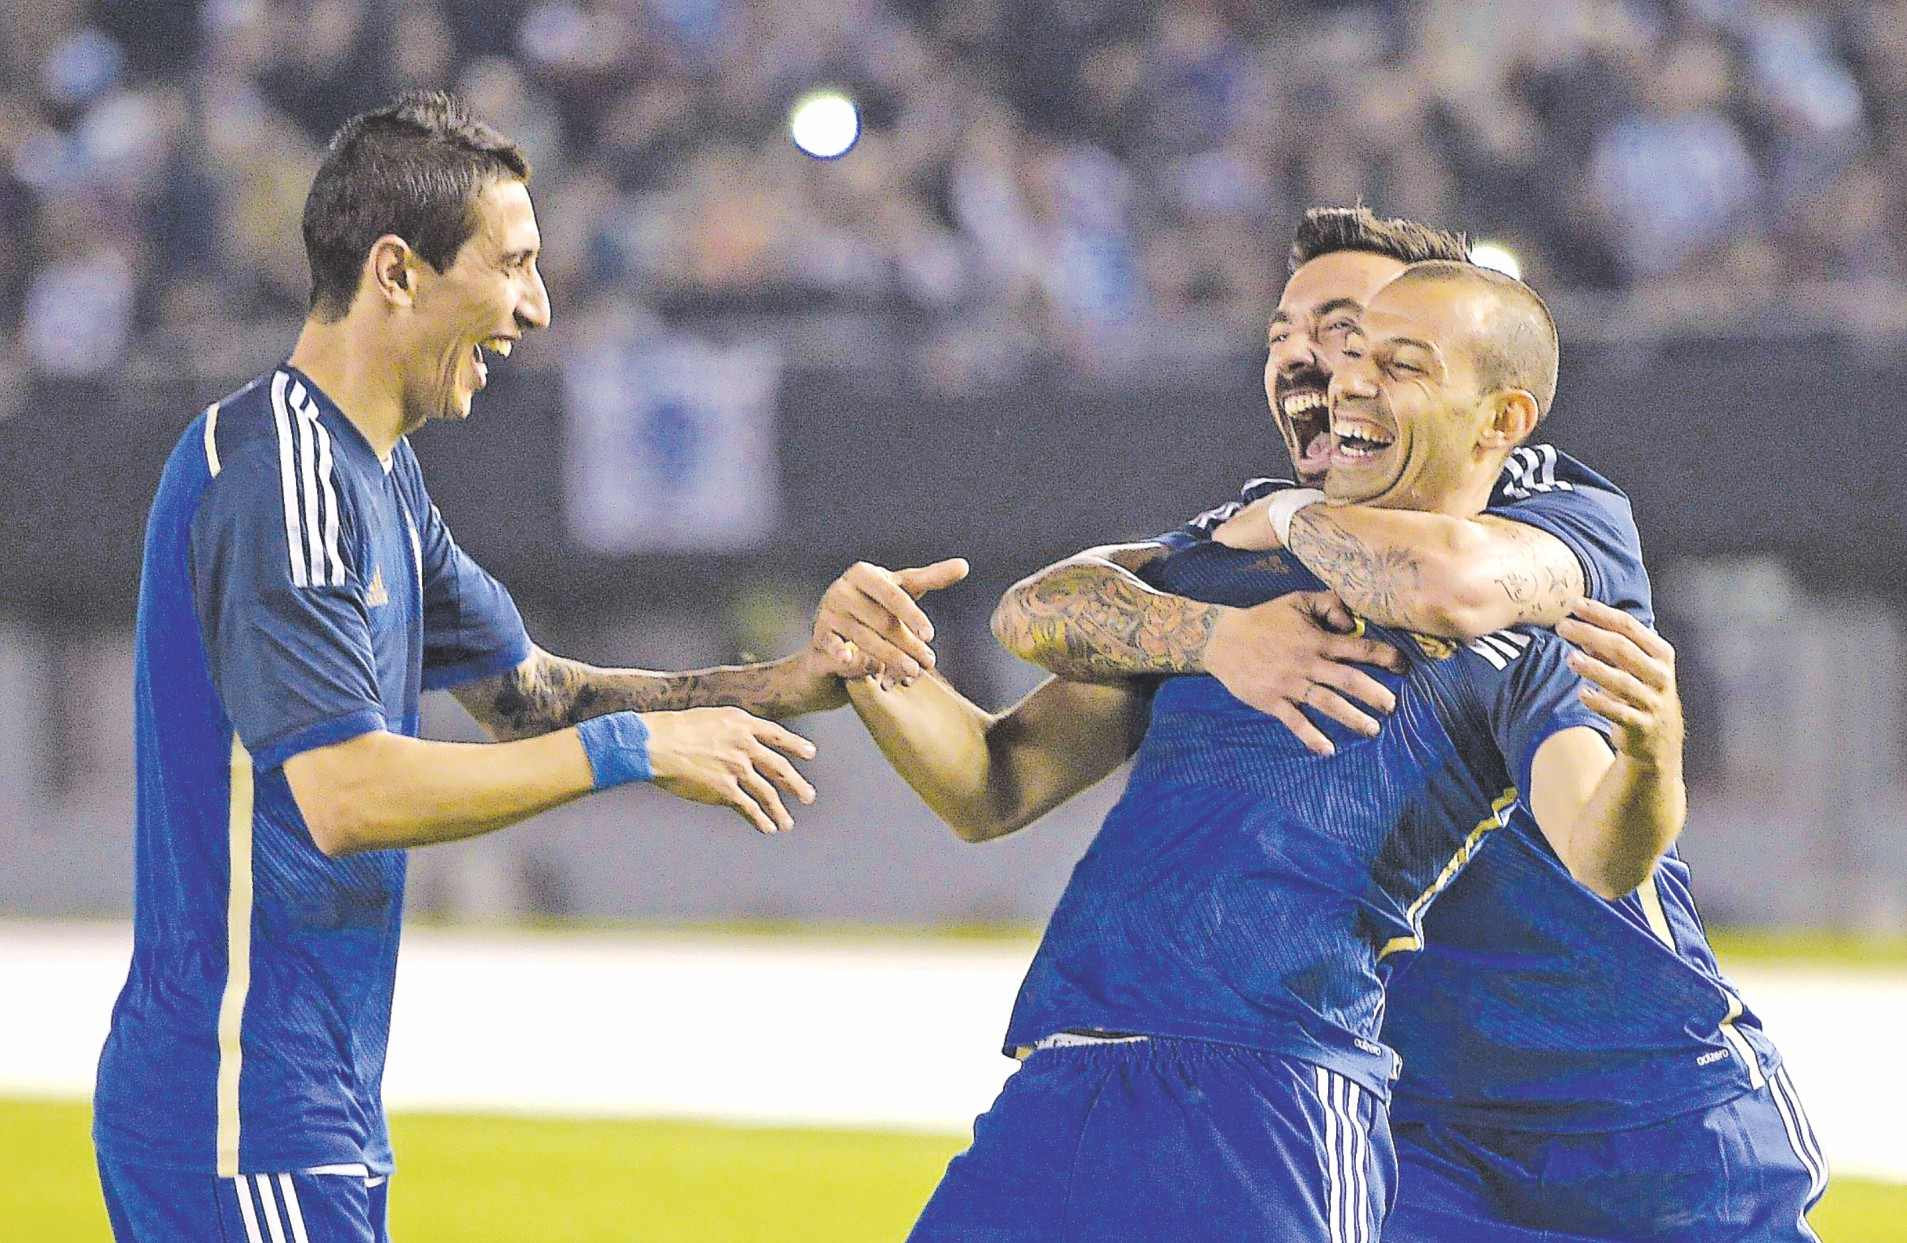 Argentina midfielder Javier Mascherano (C) celebrates his goal with teammates Ezequiel Lavezzi and Angel Di Maria (L) during their international friendly  against Trinidad and Tobago at the Monumental Stadium in Buenos Aires on Wednesday. PHOTO:  AFP